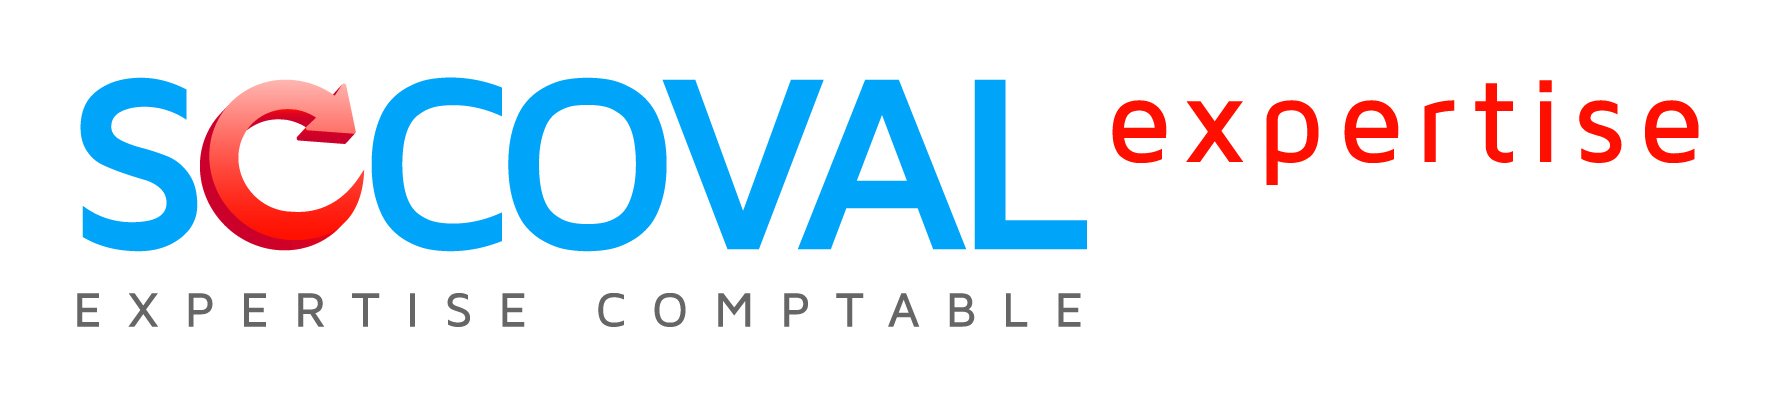 SOCOVAL EXPERTISE - Expertise Comptable - Joue Les Tours